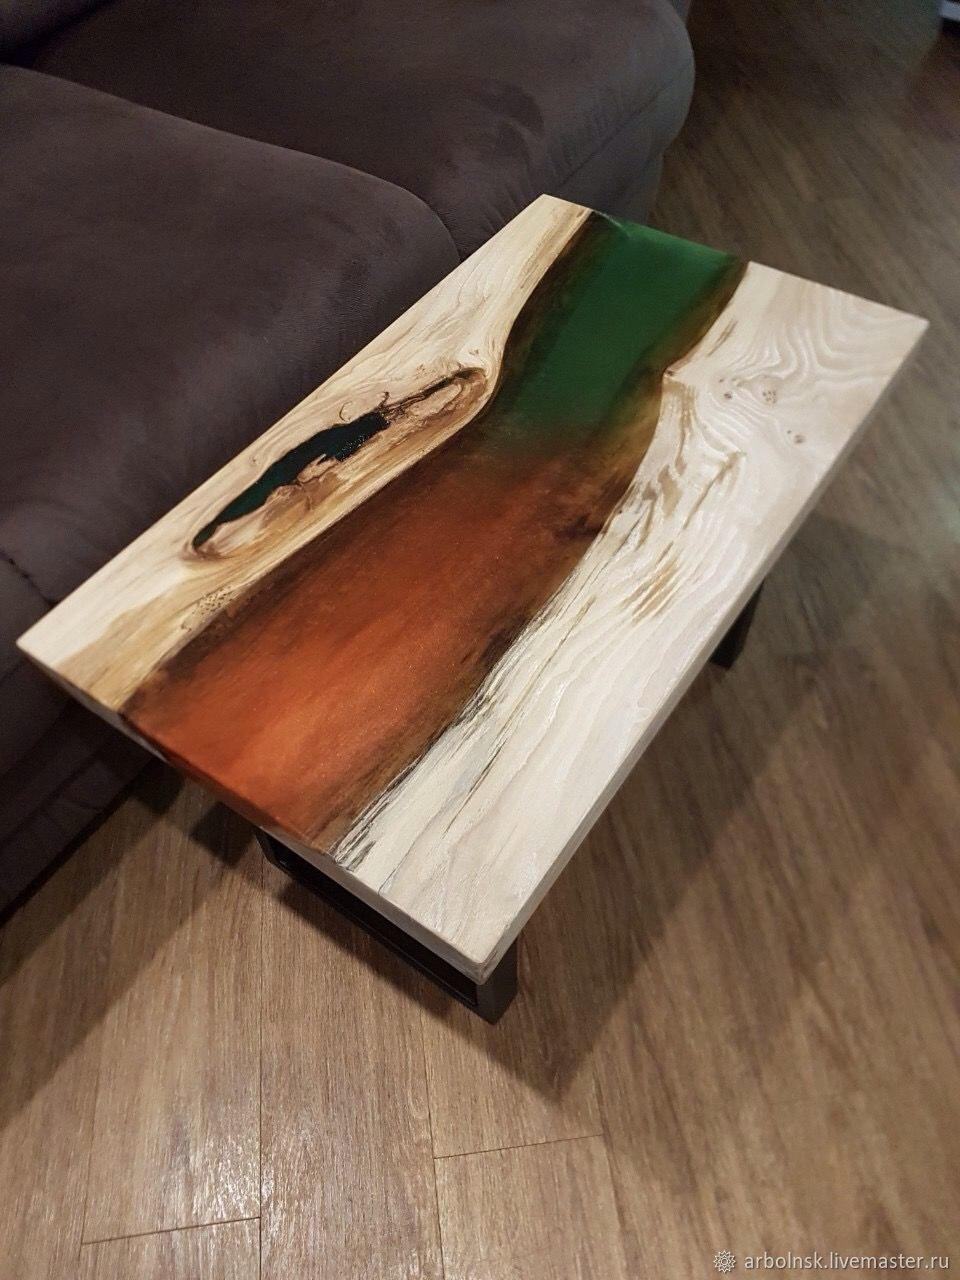 table river with epoxy shop online on livemaster with shipping rh livemaster com